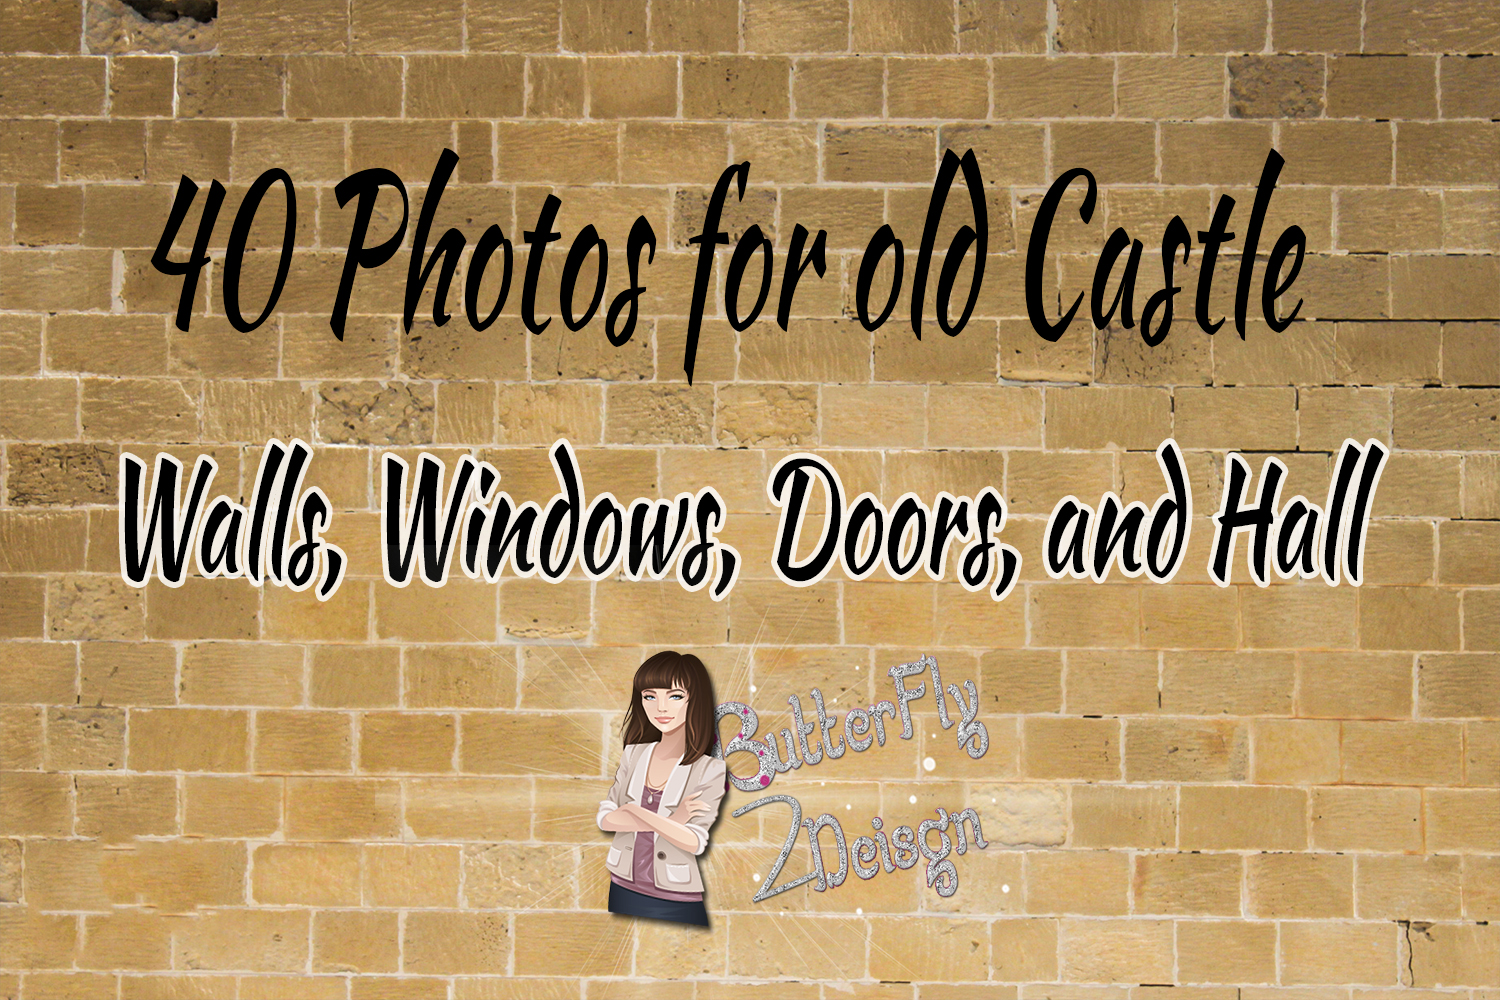 40 Adventurer photos for Old Castle example image 1